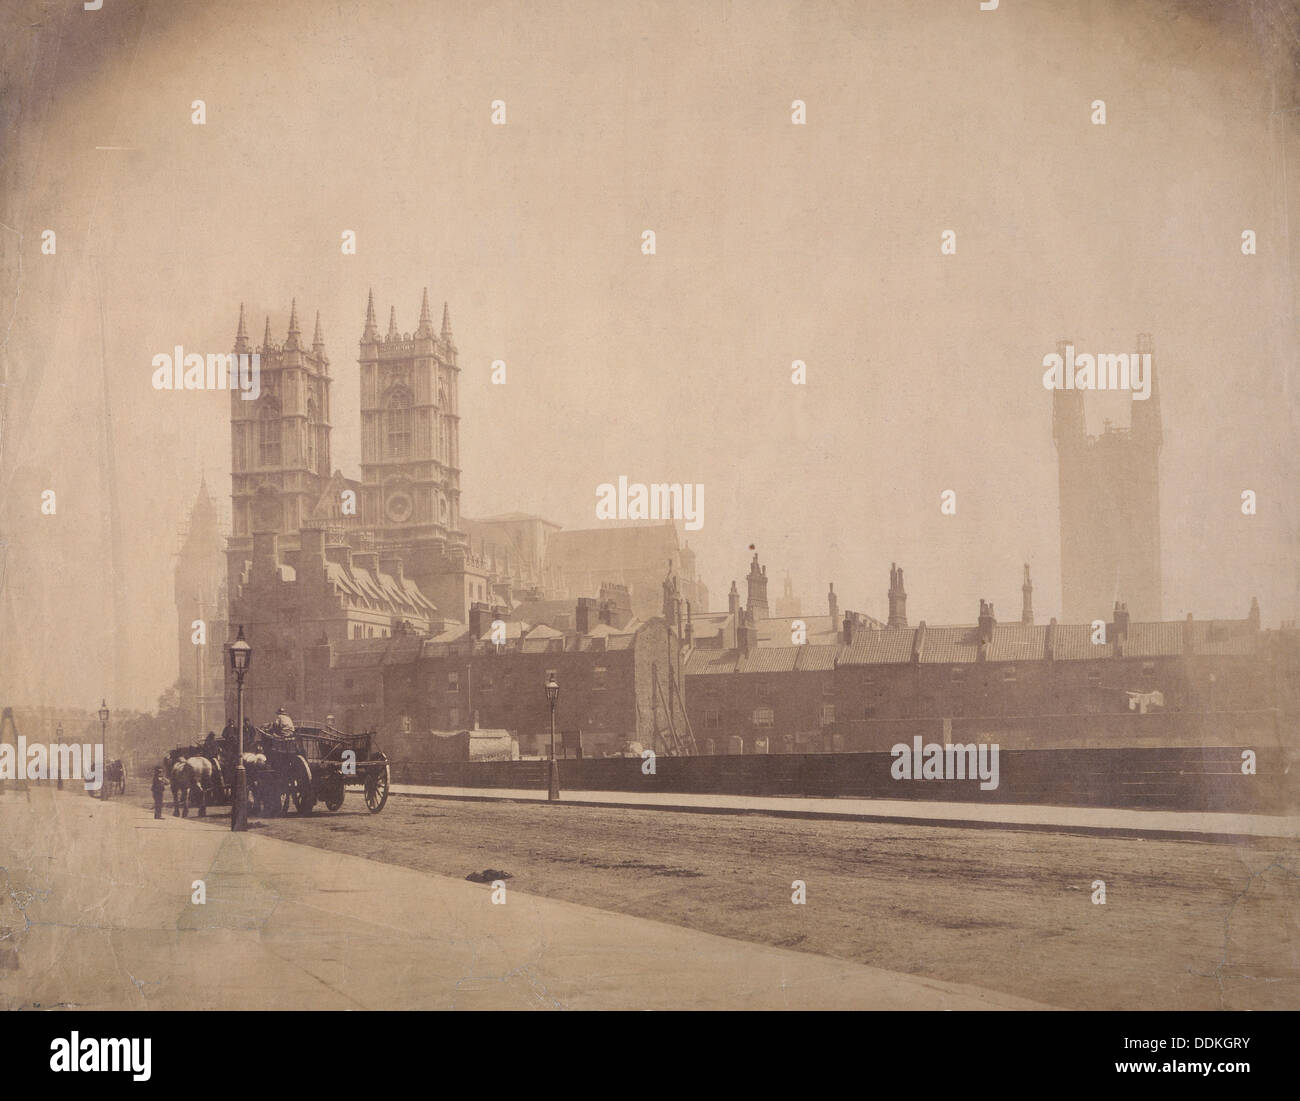 Westminster Abbey, and the Palace of Westminster under construction, London, c1857. Artist: Roger Fenton - Stock Image